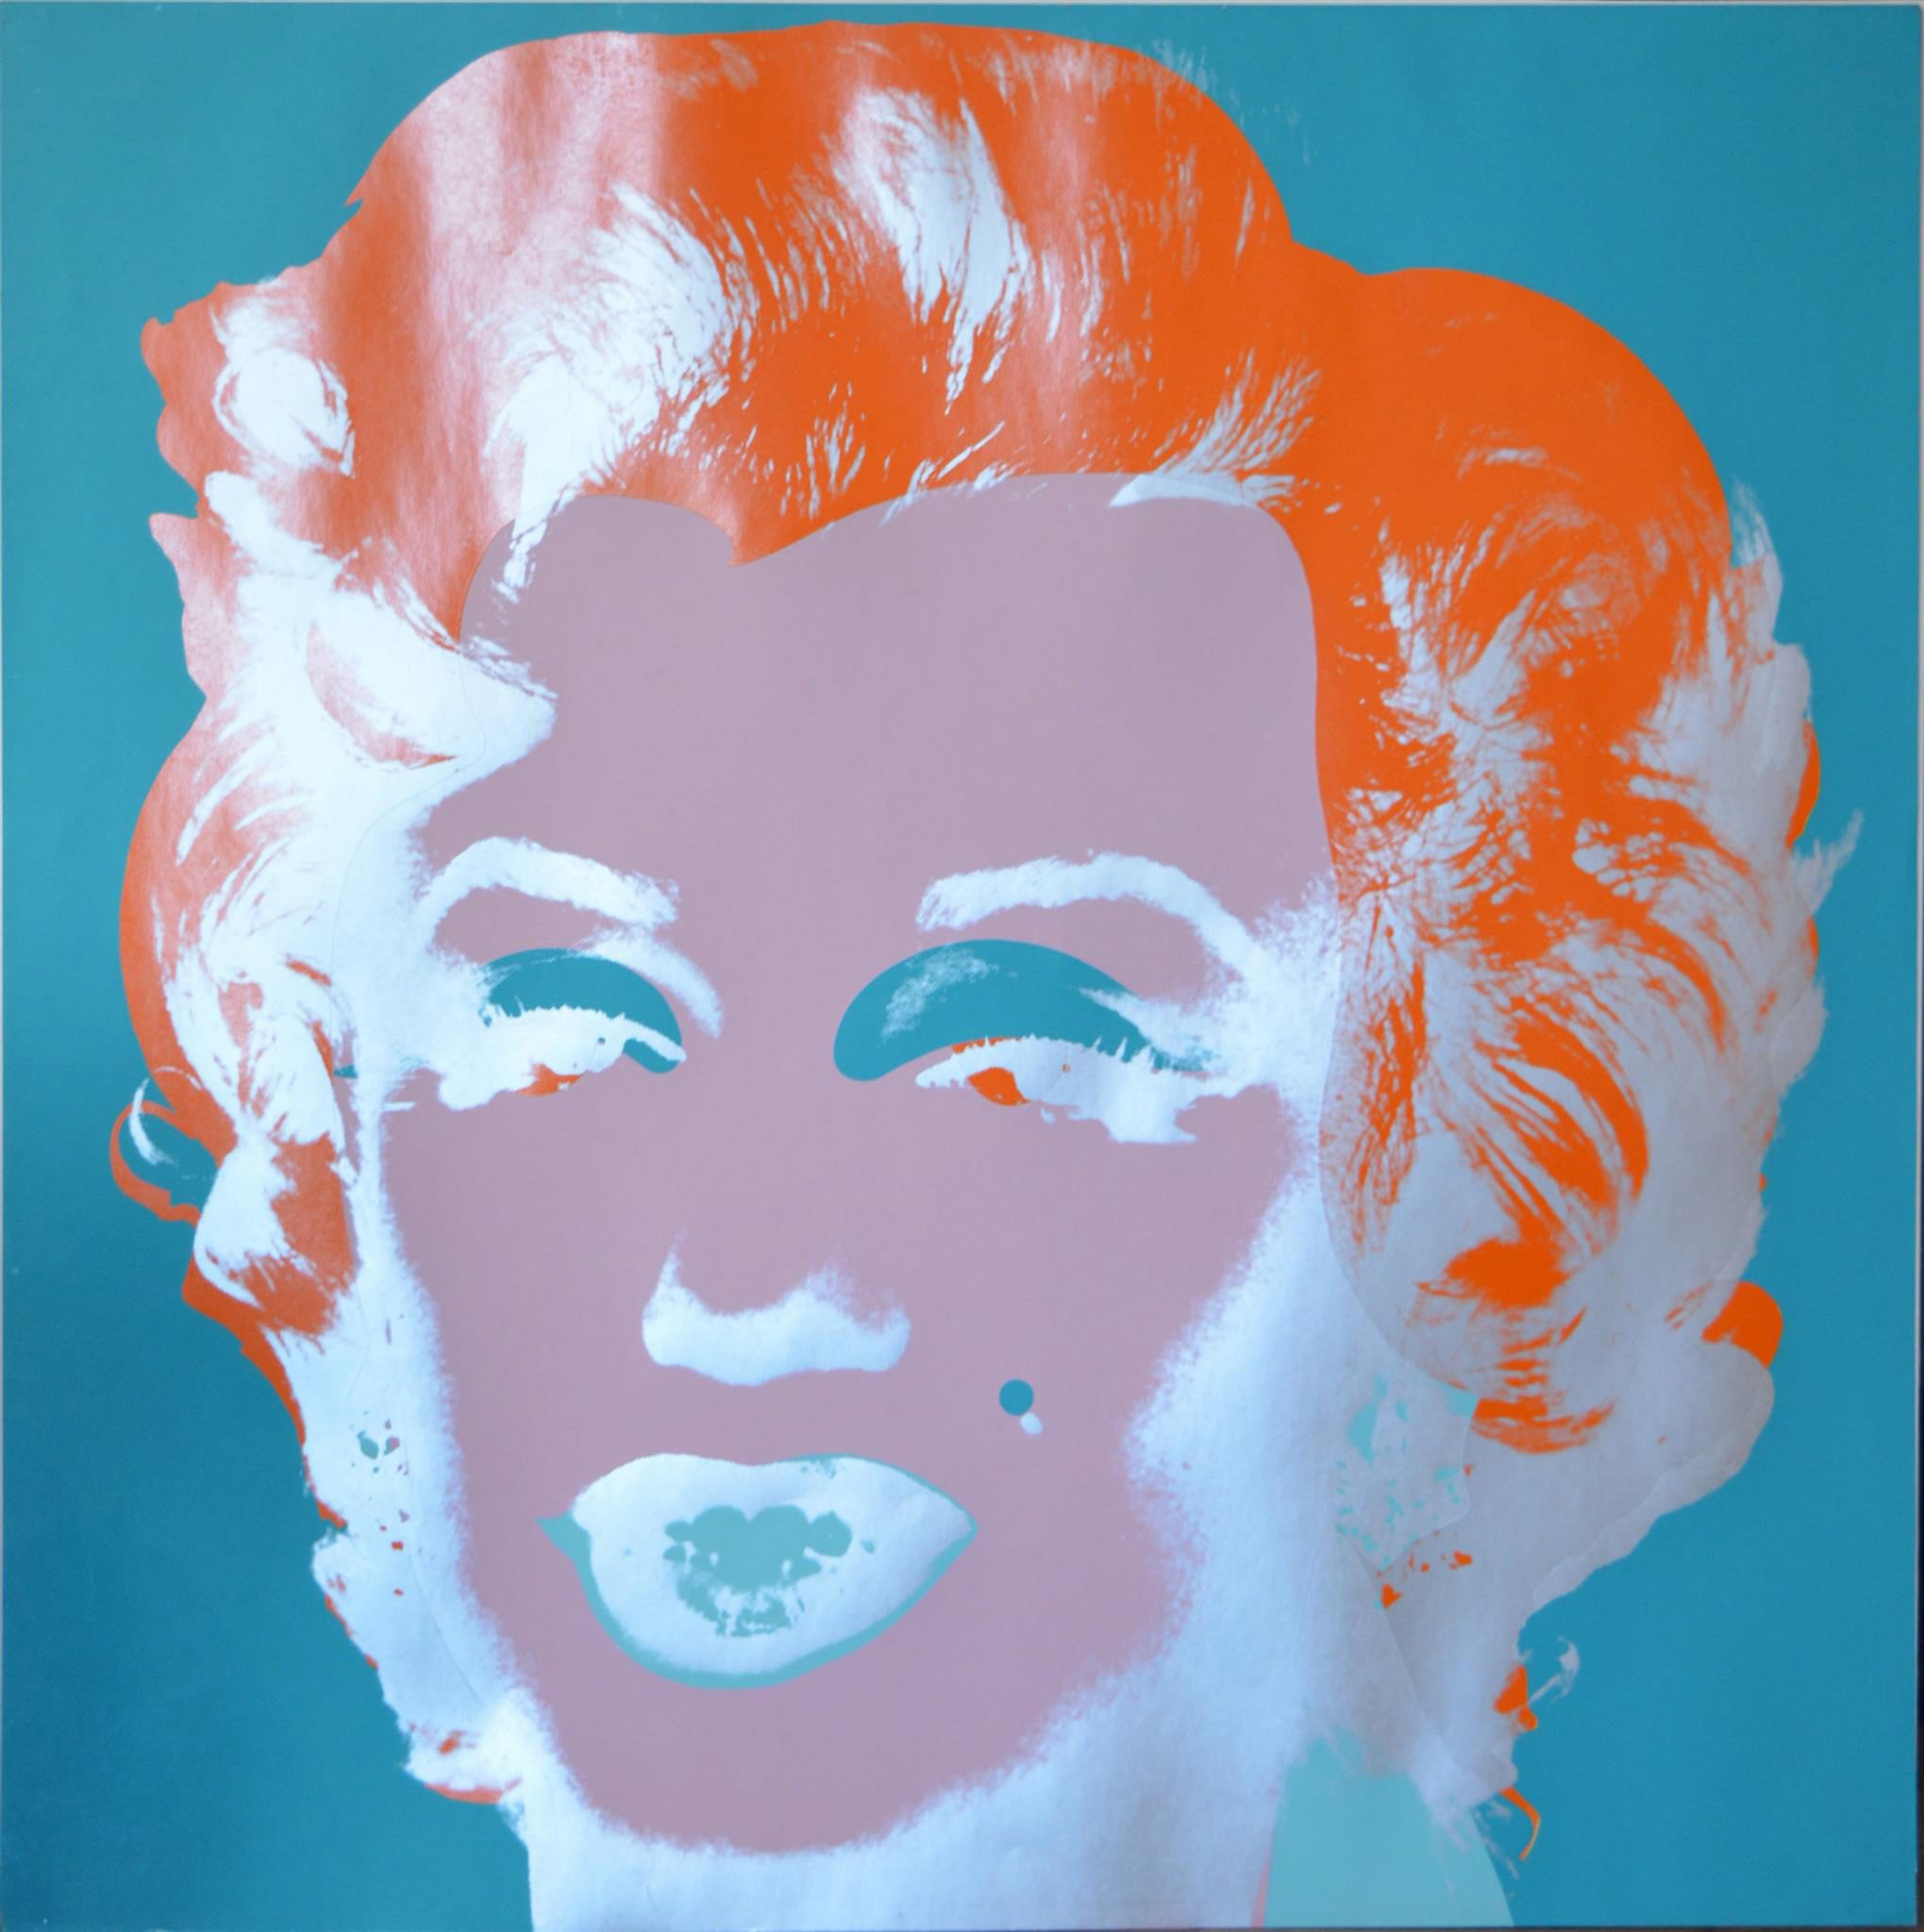 Andy Warhol Marilyn, 1967 Serigrafia su carta, 91,4x91,4 cm © The Andy Warhol Foundation for the Visual Arts Inc. by SIAE 2018 per A. Warhol